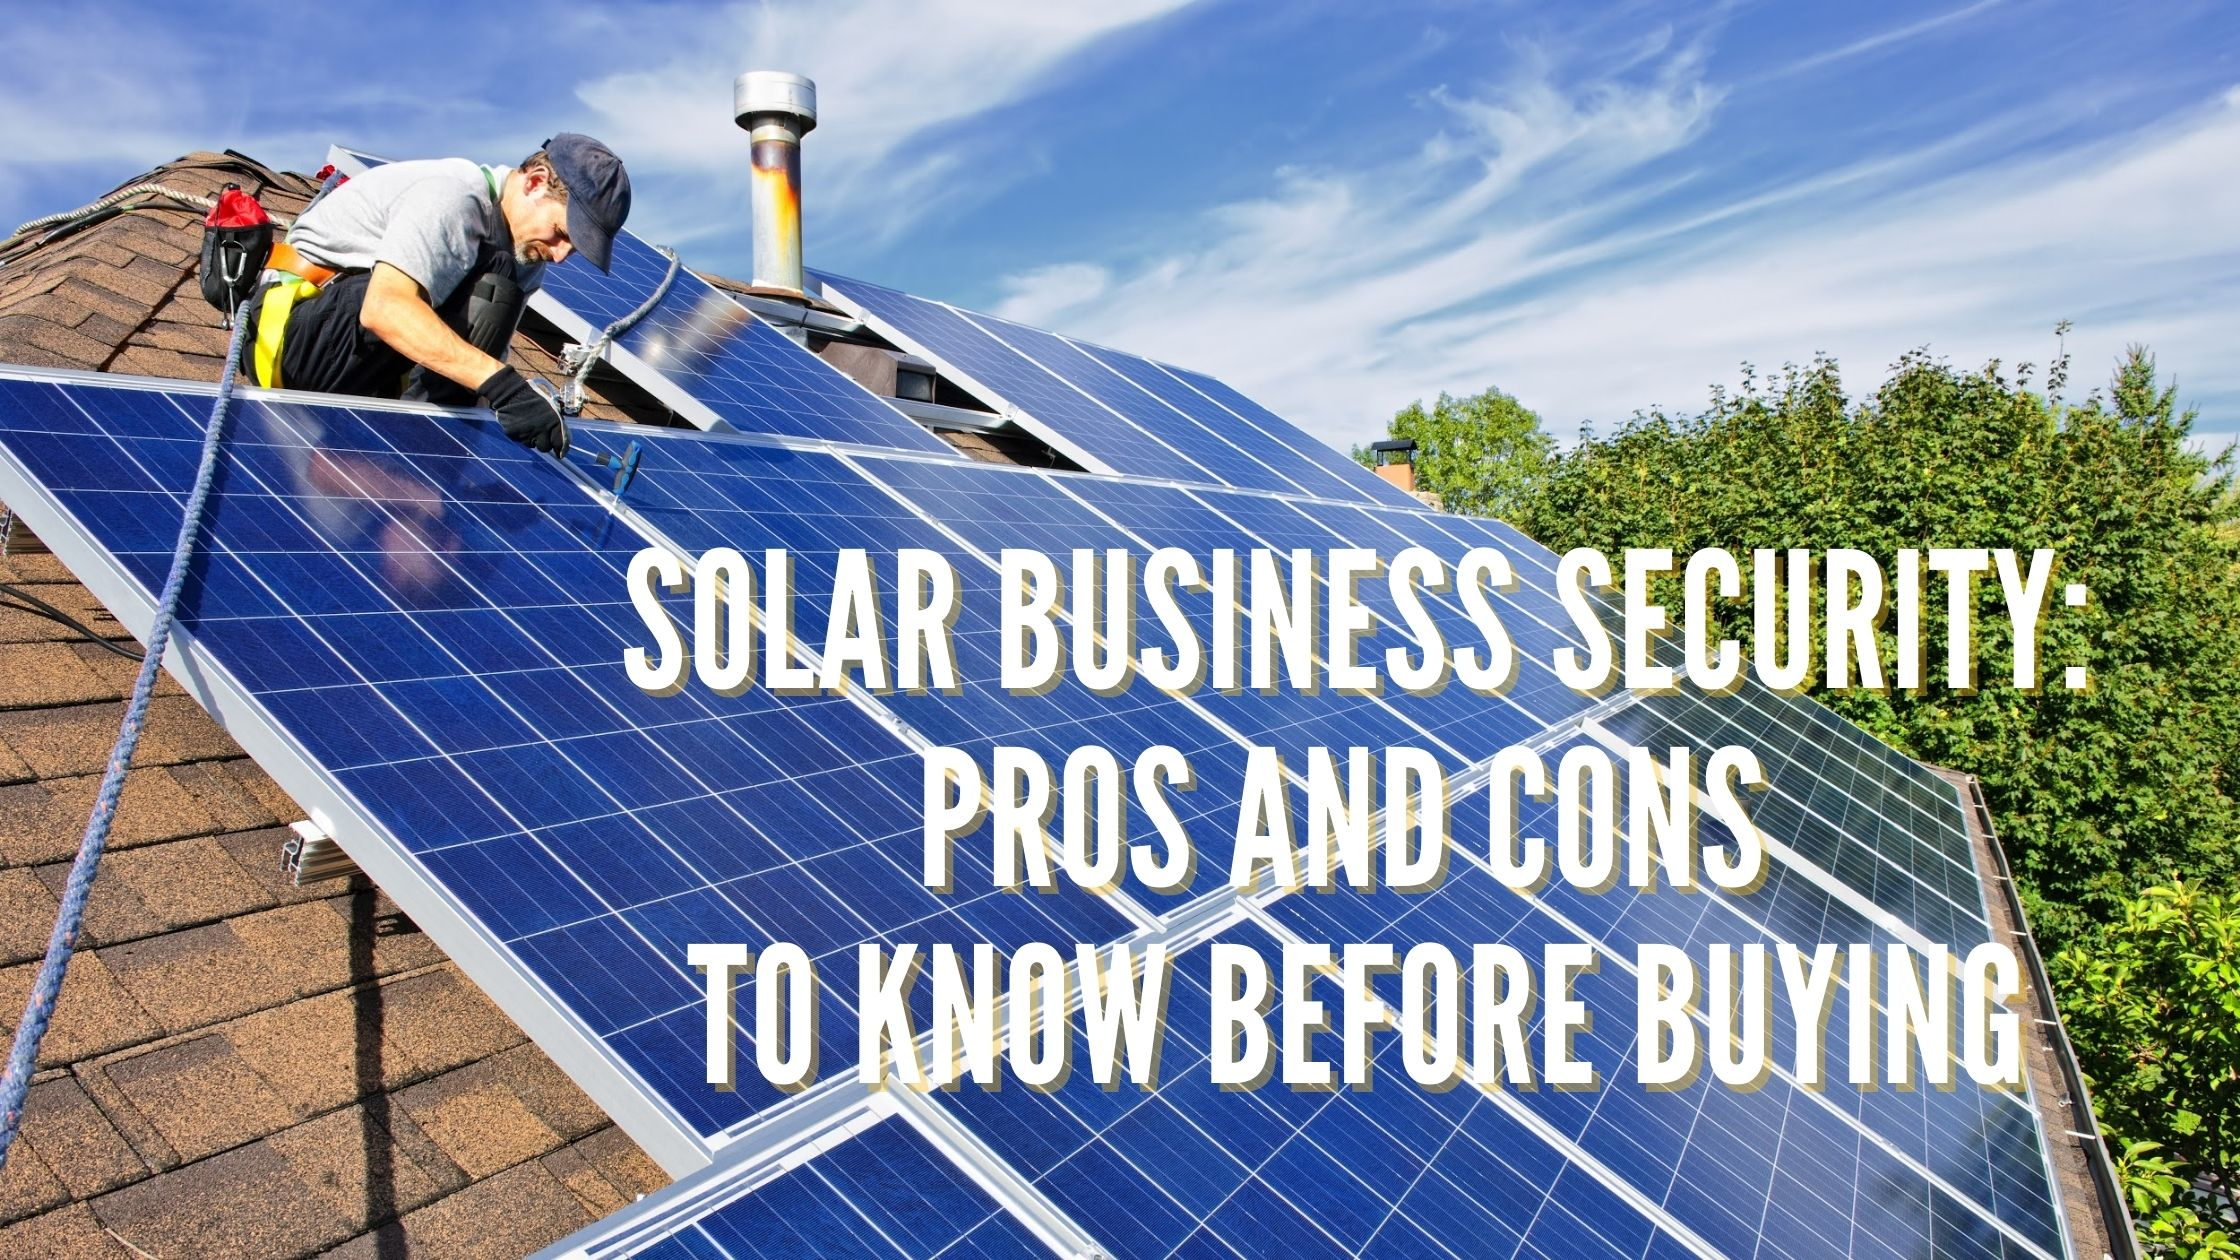 Solar Business Security Pros and Cons to Know Before Buying